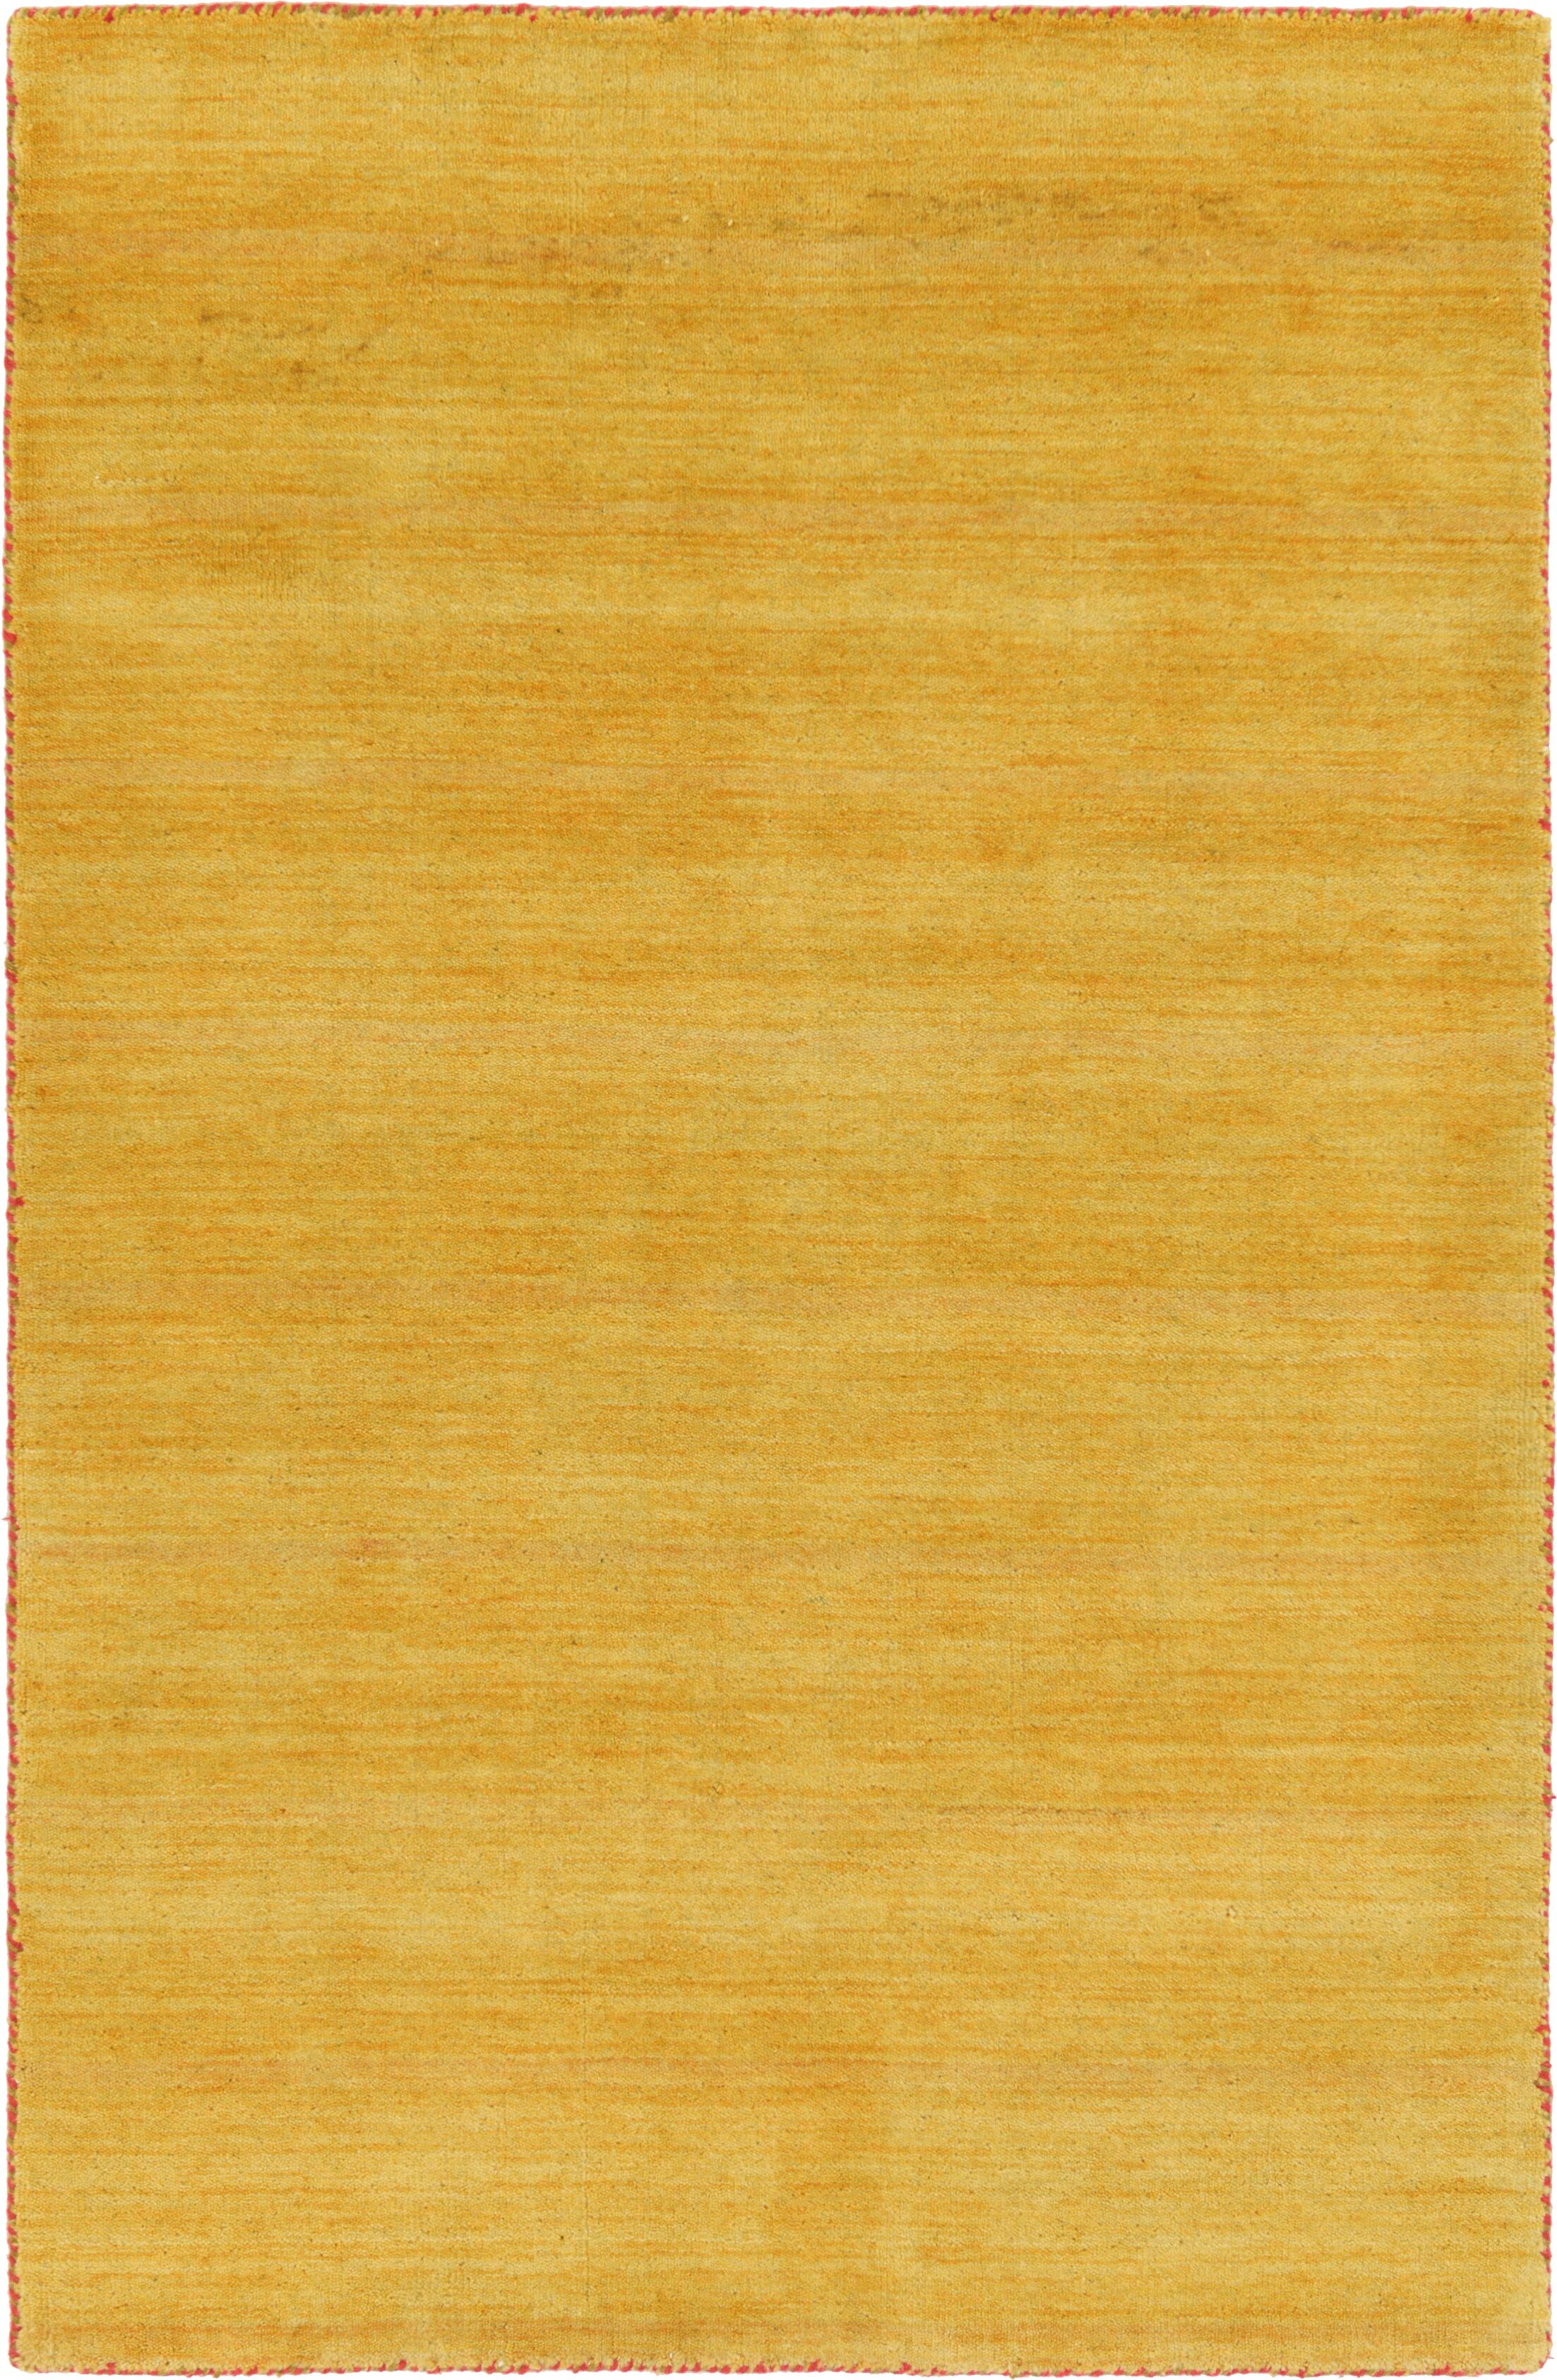 Taul Hand-Knotted Wool Gold Area Rug Rug Size: 4' 0 x 5' 7